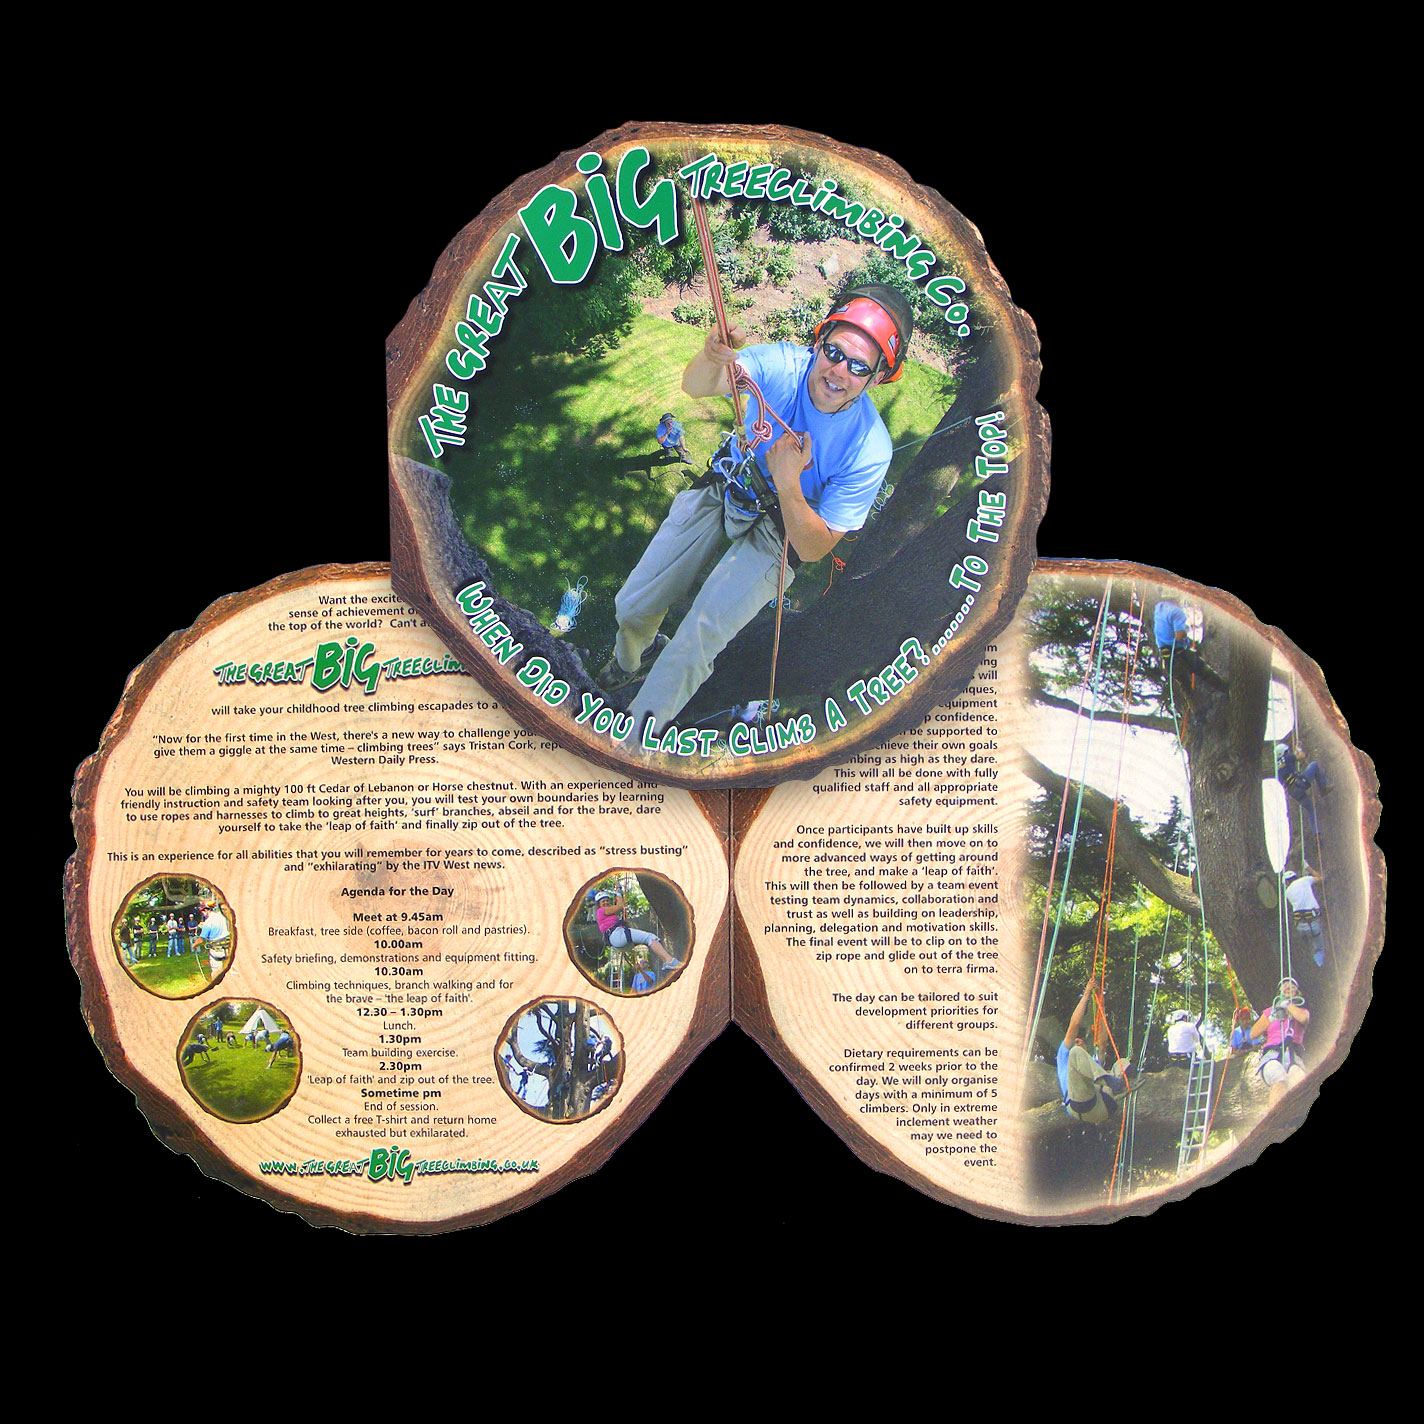 Print - 4 Page Brochure for The Big Tree Climbing Co. - 300gsm Matt Laminated, Die Cut - Design, Artwork, Cutter & Production.